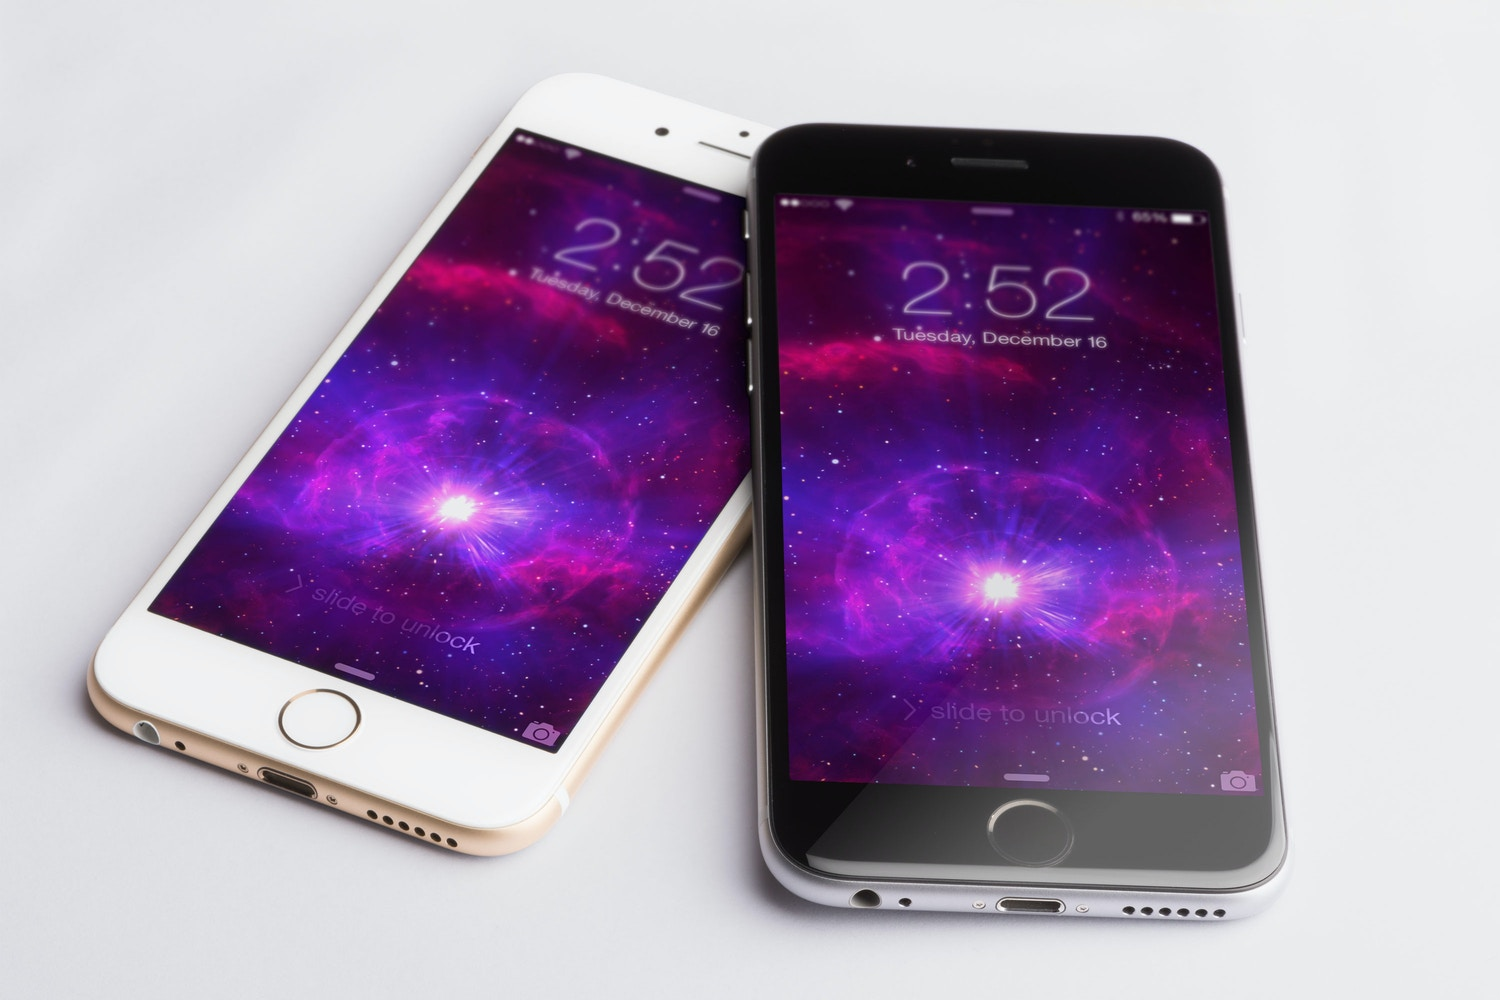 Iphone 6 Gold and Spacegray PSD Mockup 02 por Original Mockups en Original Mockups